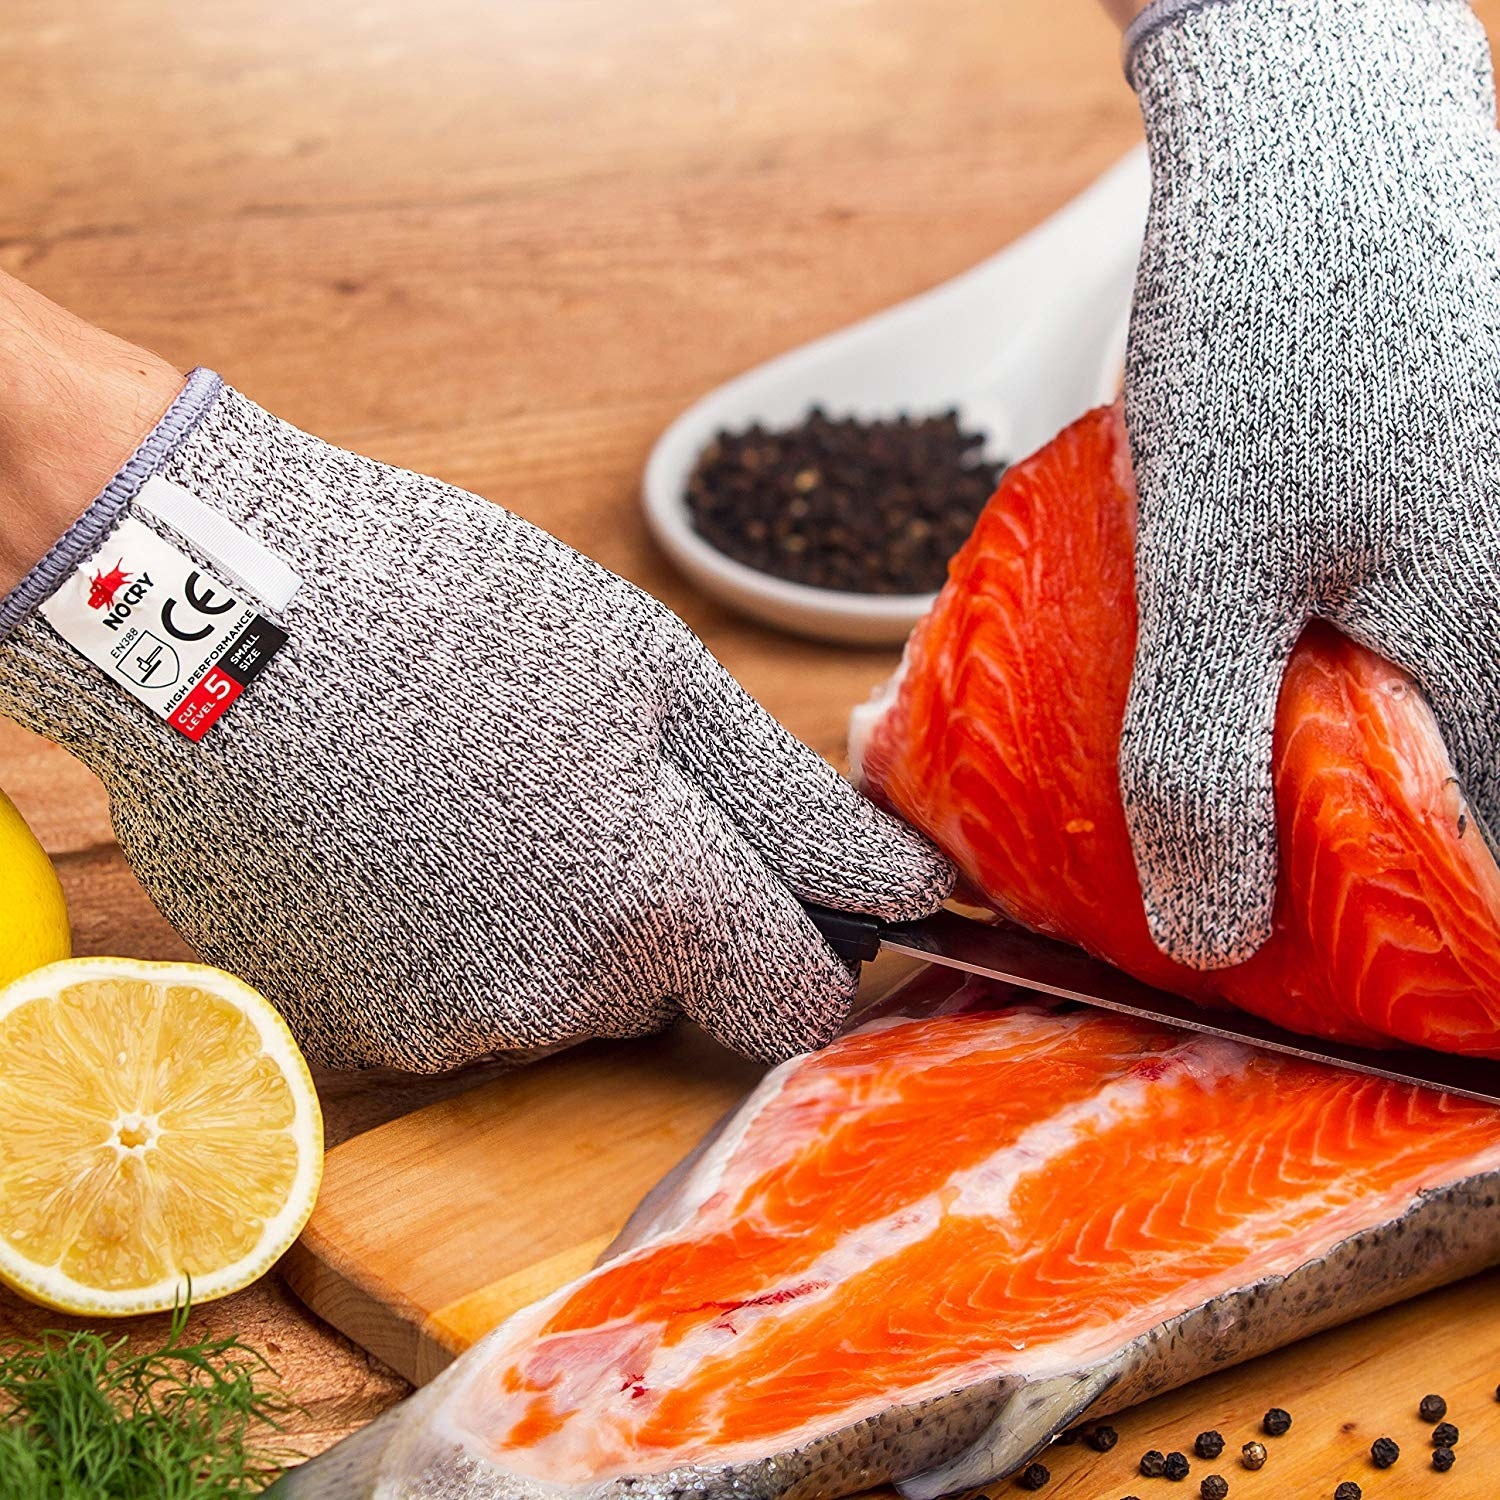 A person cutting a fish while wearing the no-cut gloves.